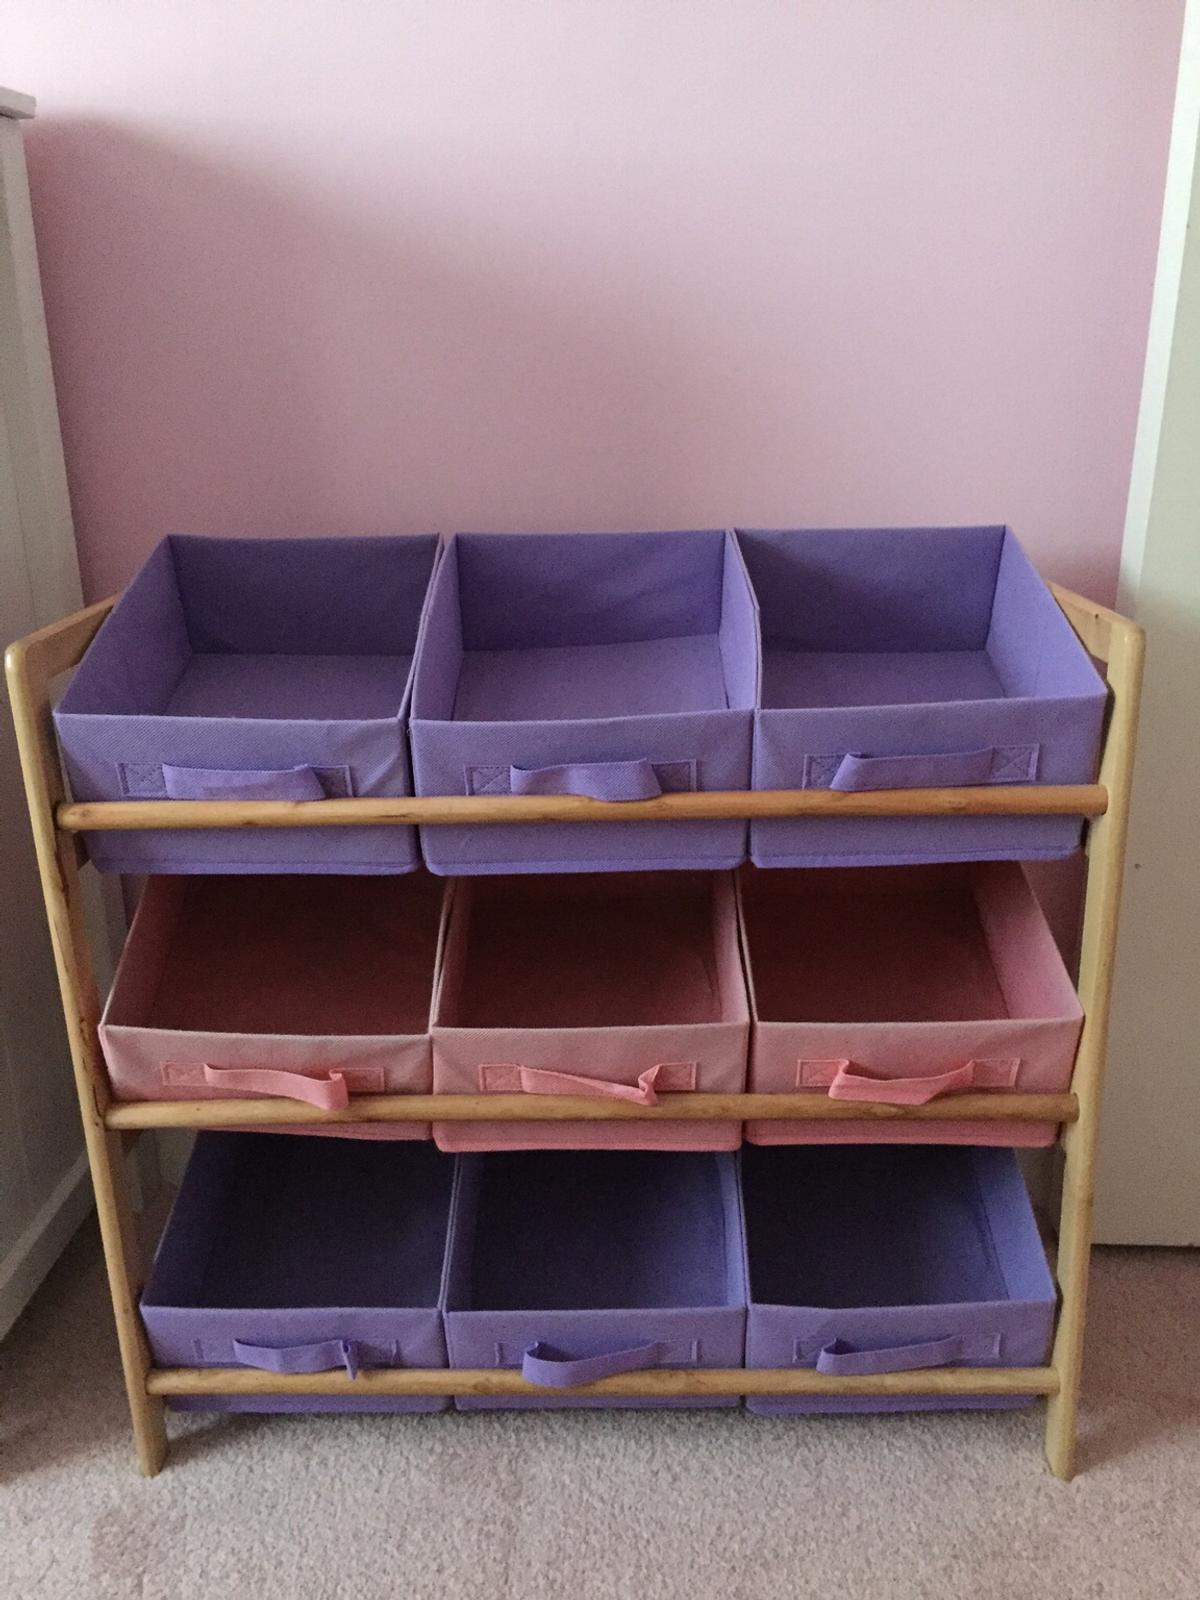 Pink and purple girls bedroom storage boxes